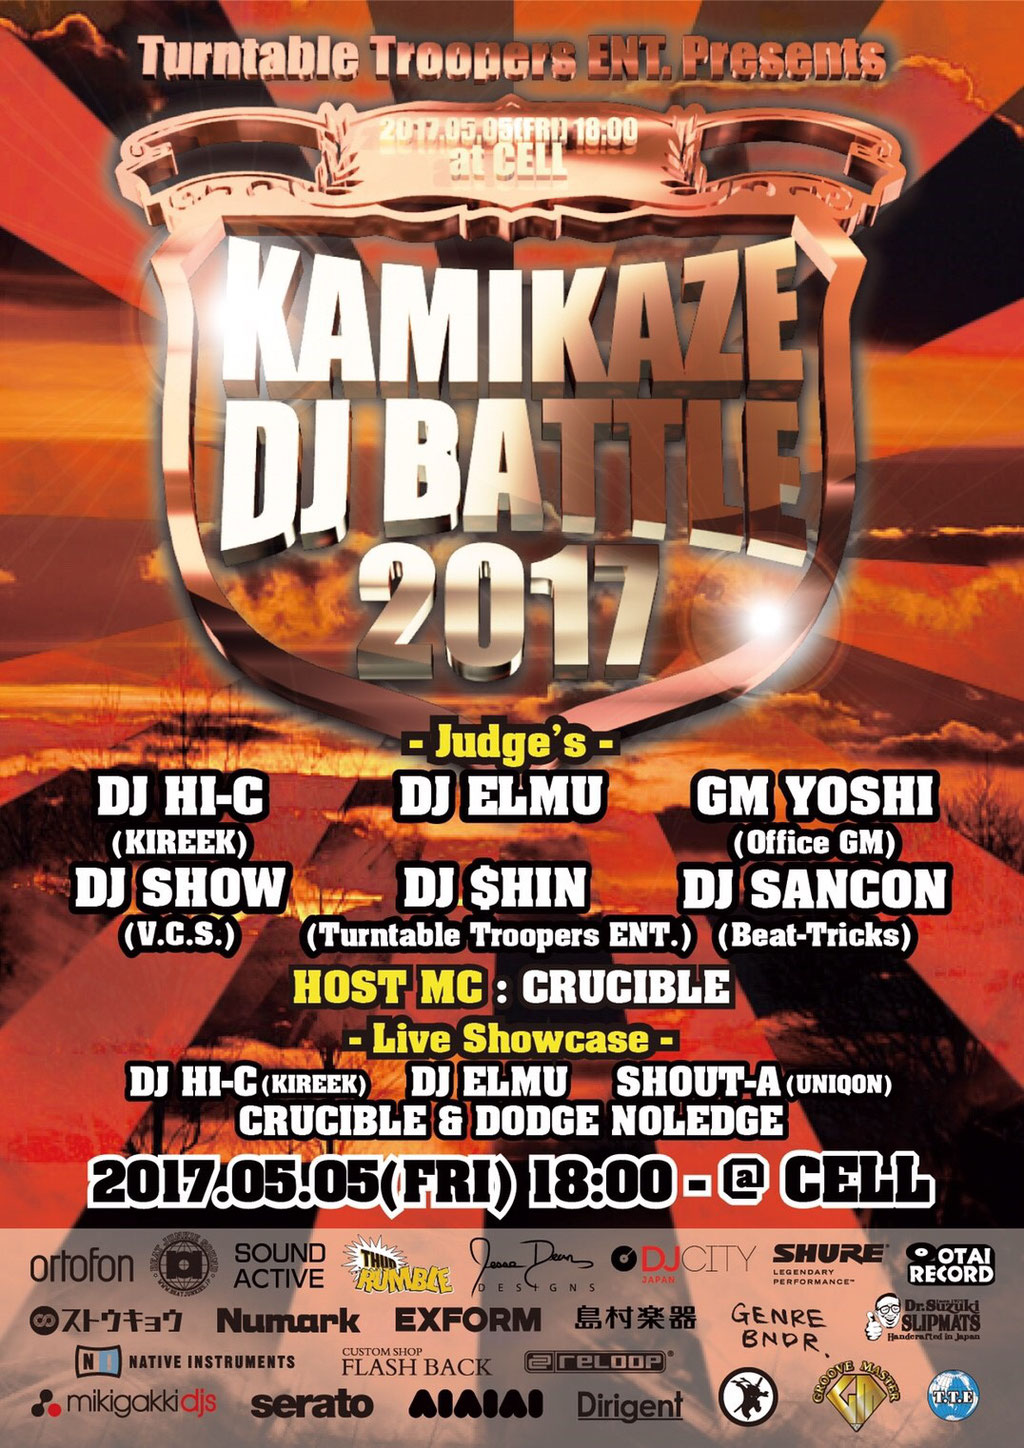 Kamikaze dj battle 2017